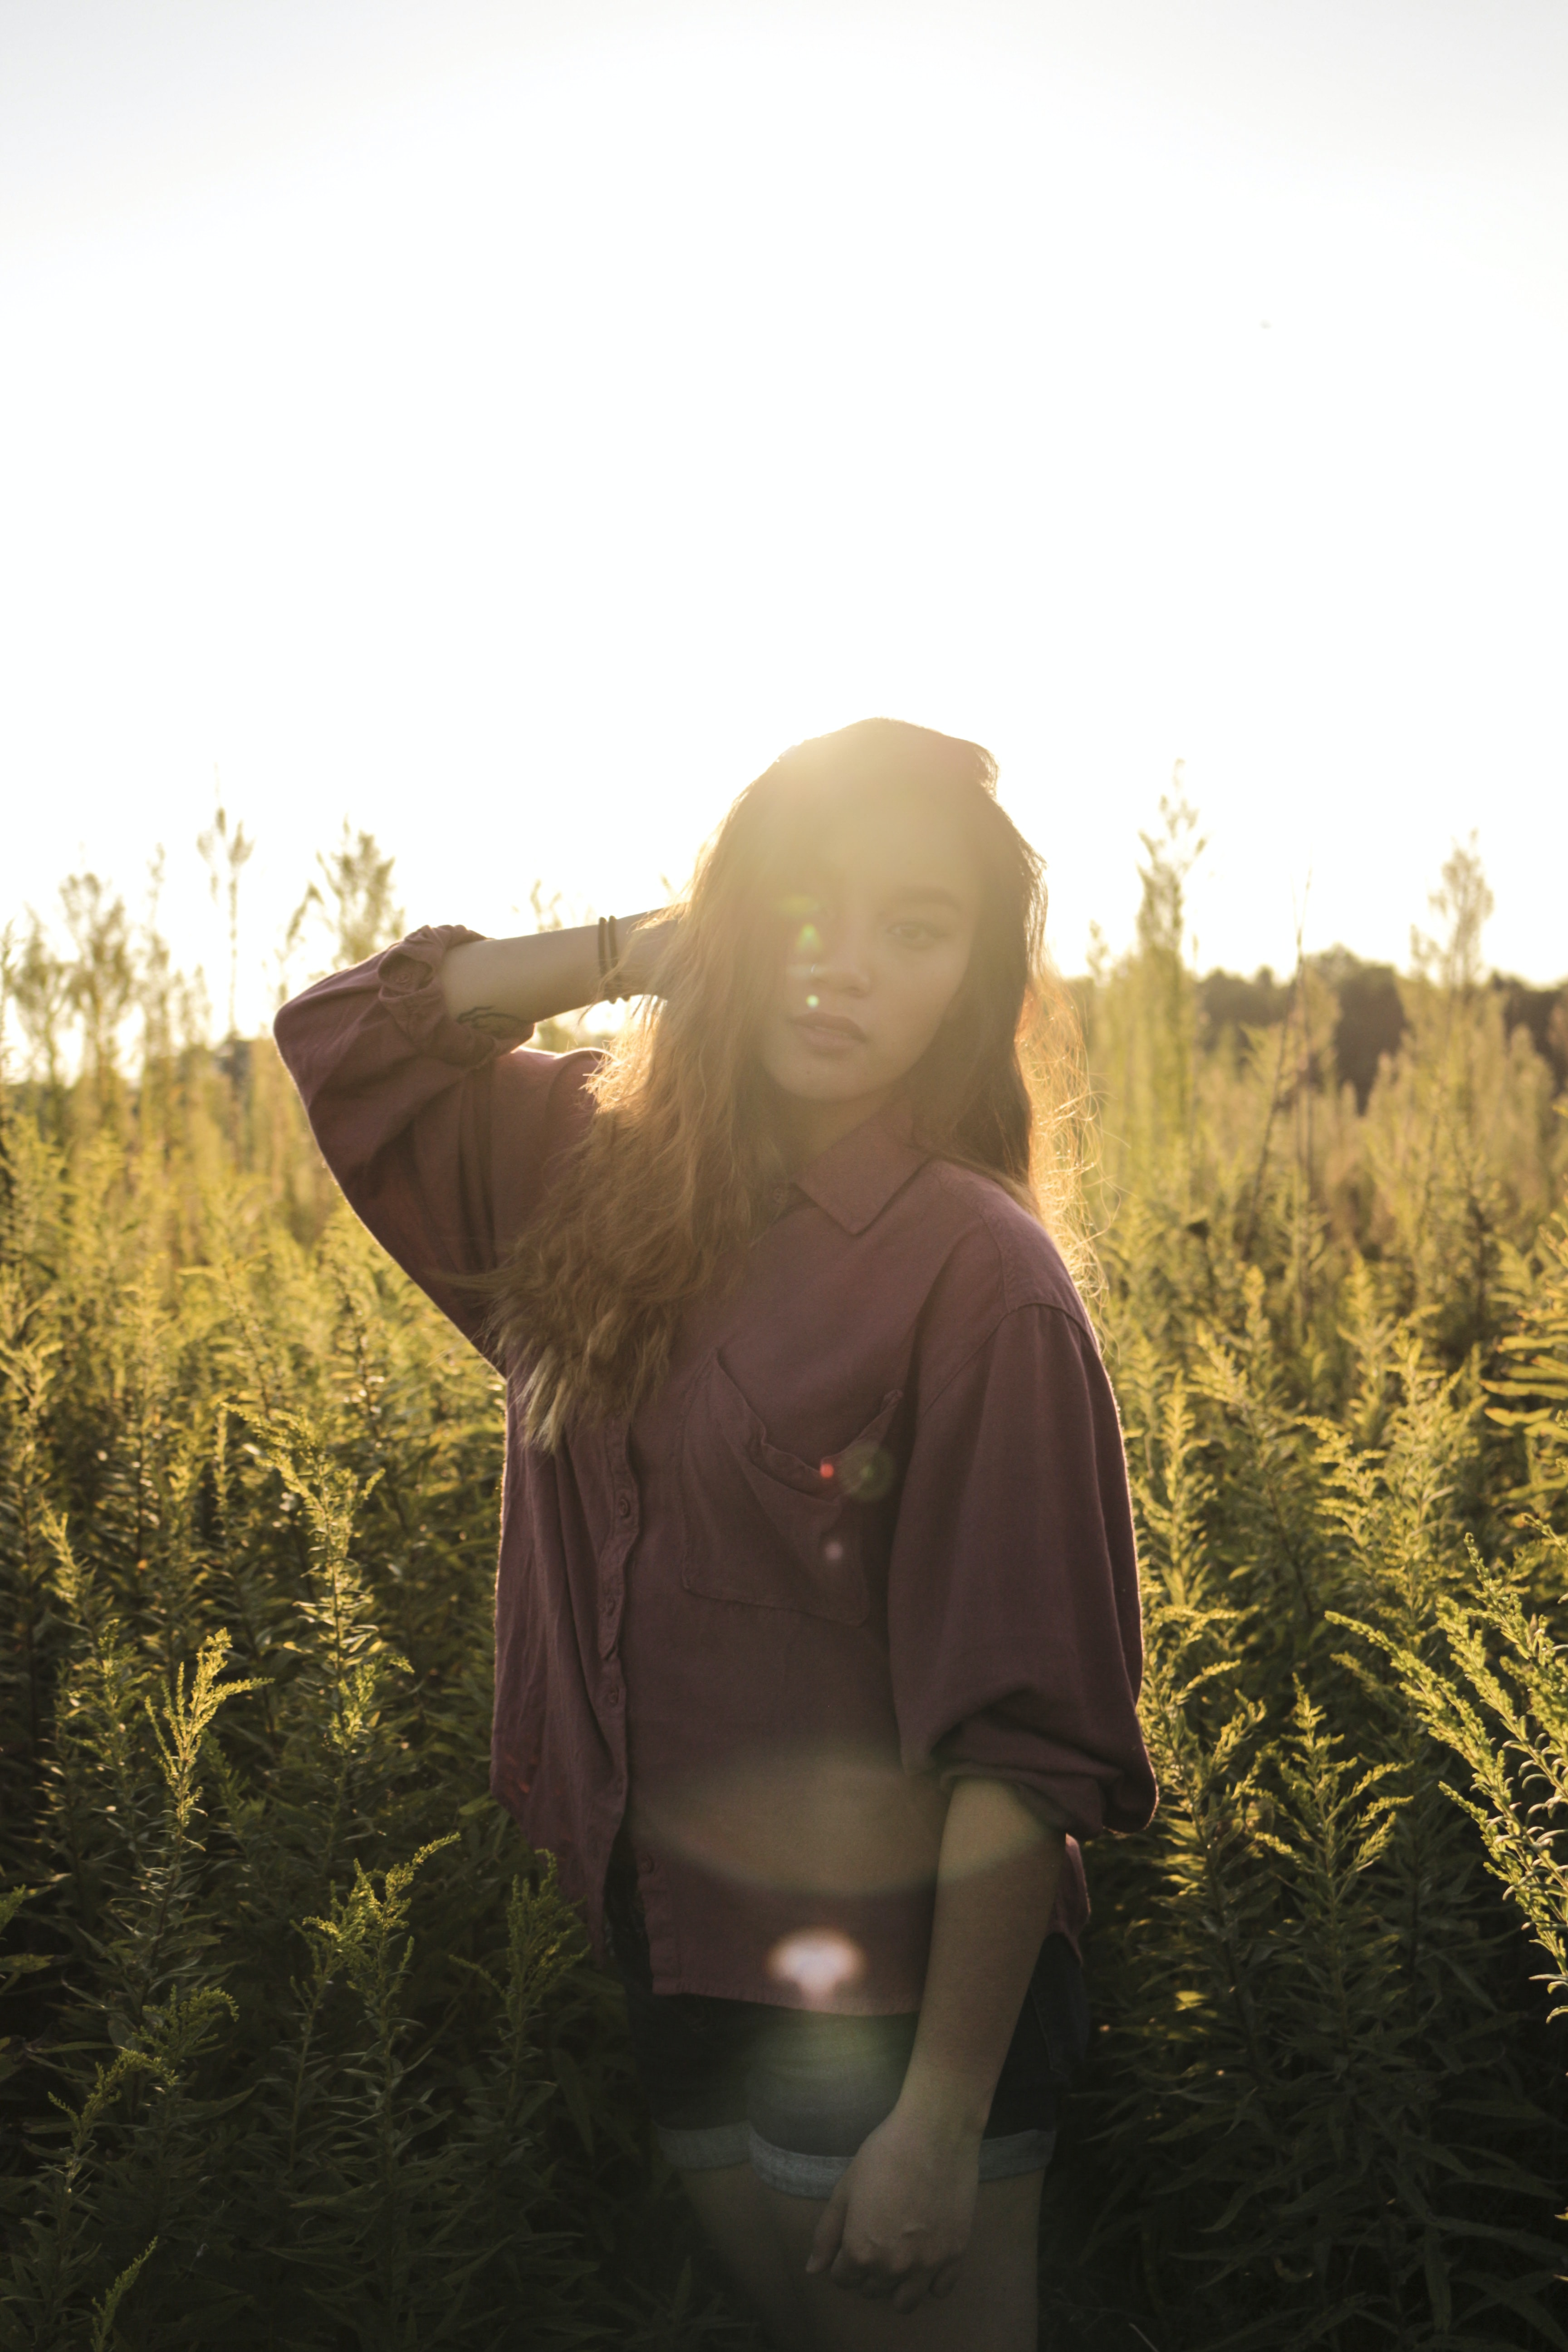 Sun shining behind a woman modeling country chic clothes in a field